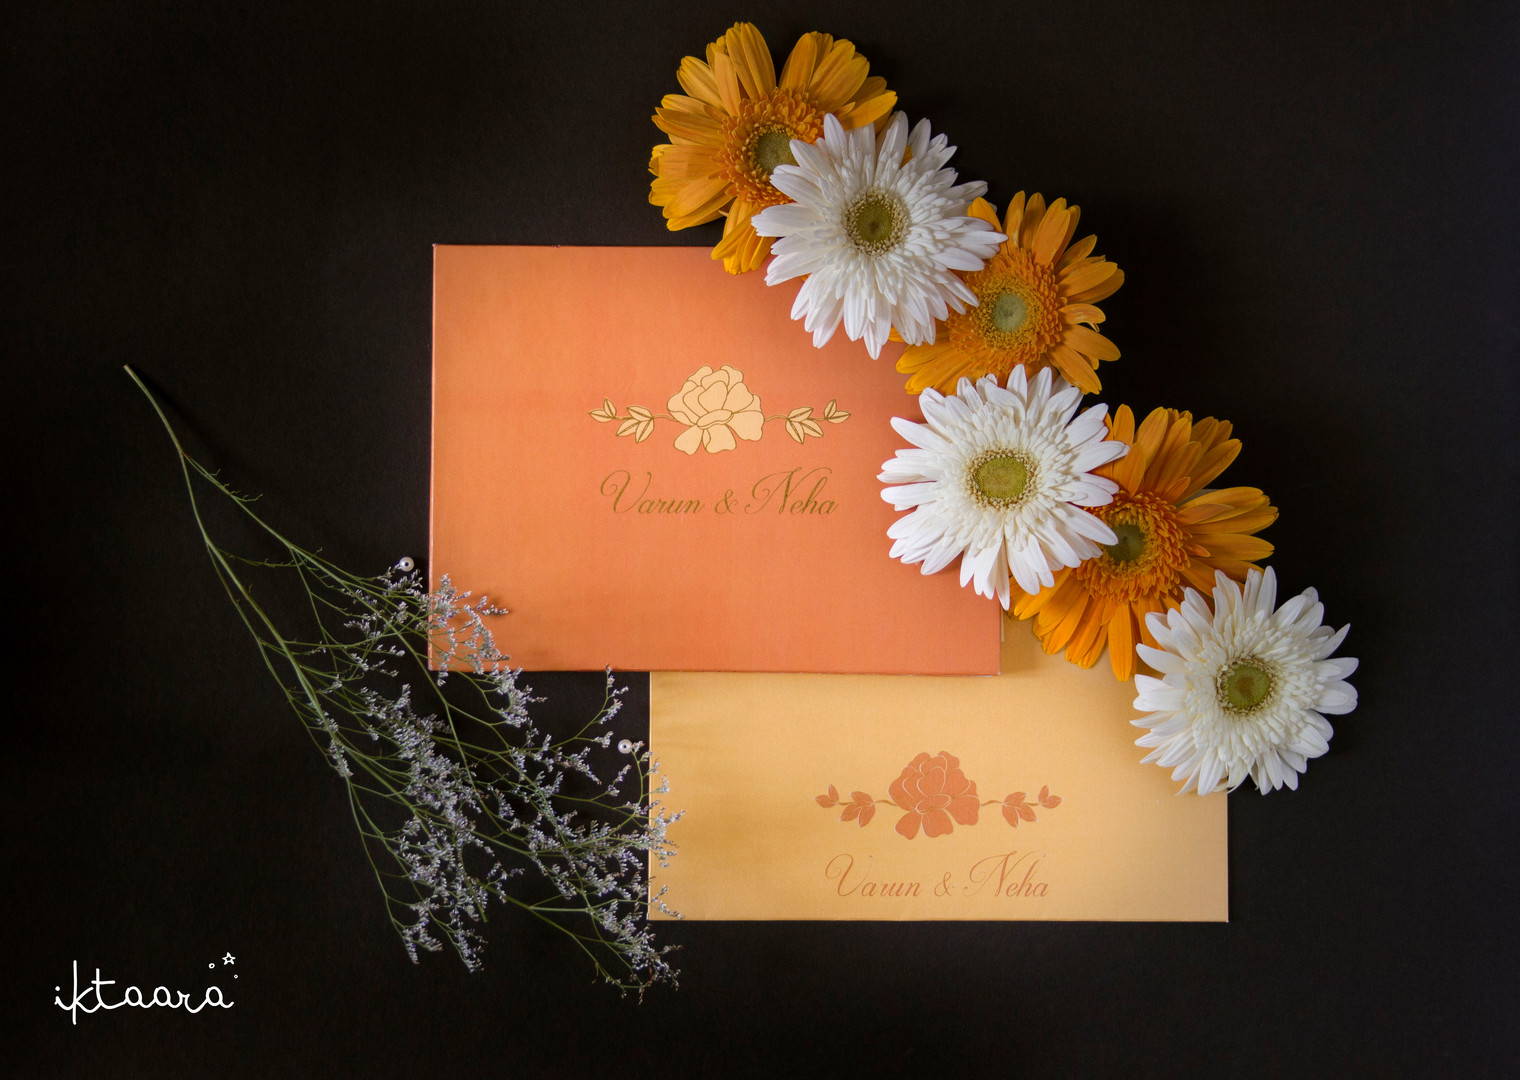 A Marigold Themed Wedding Invite